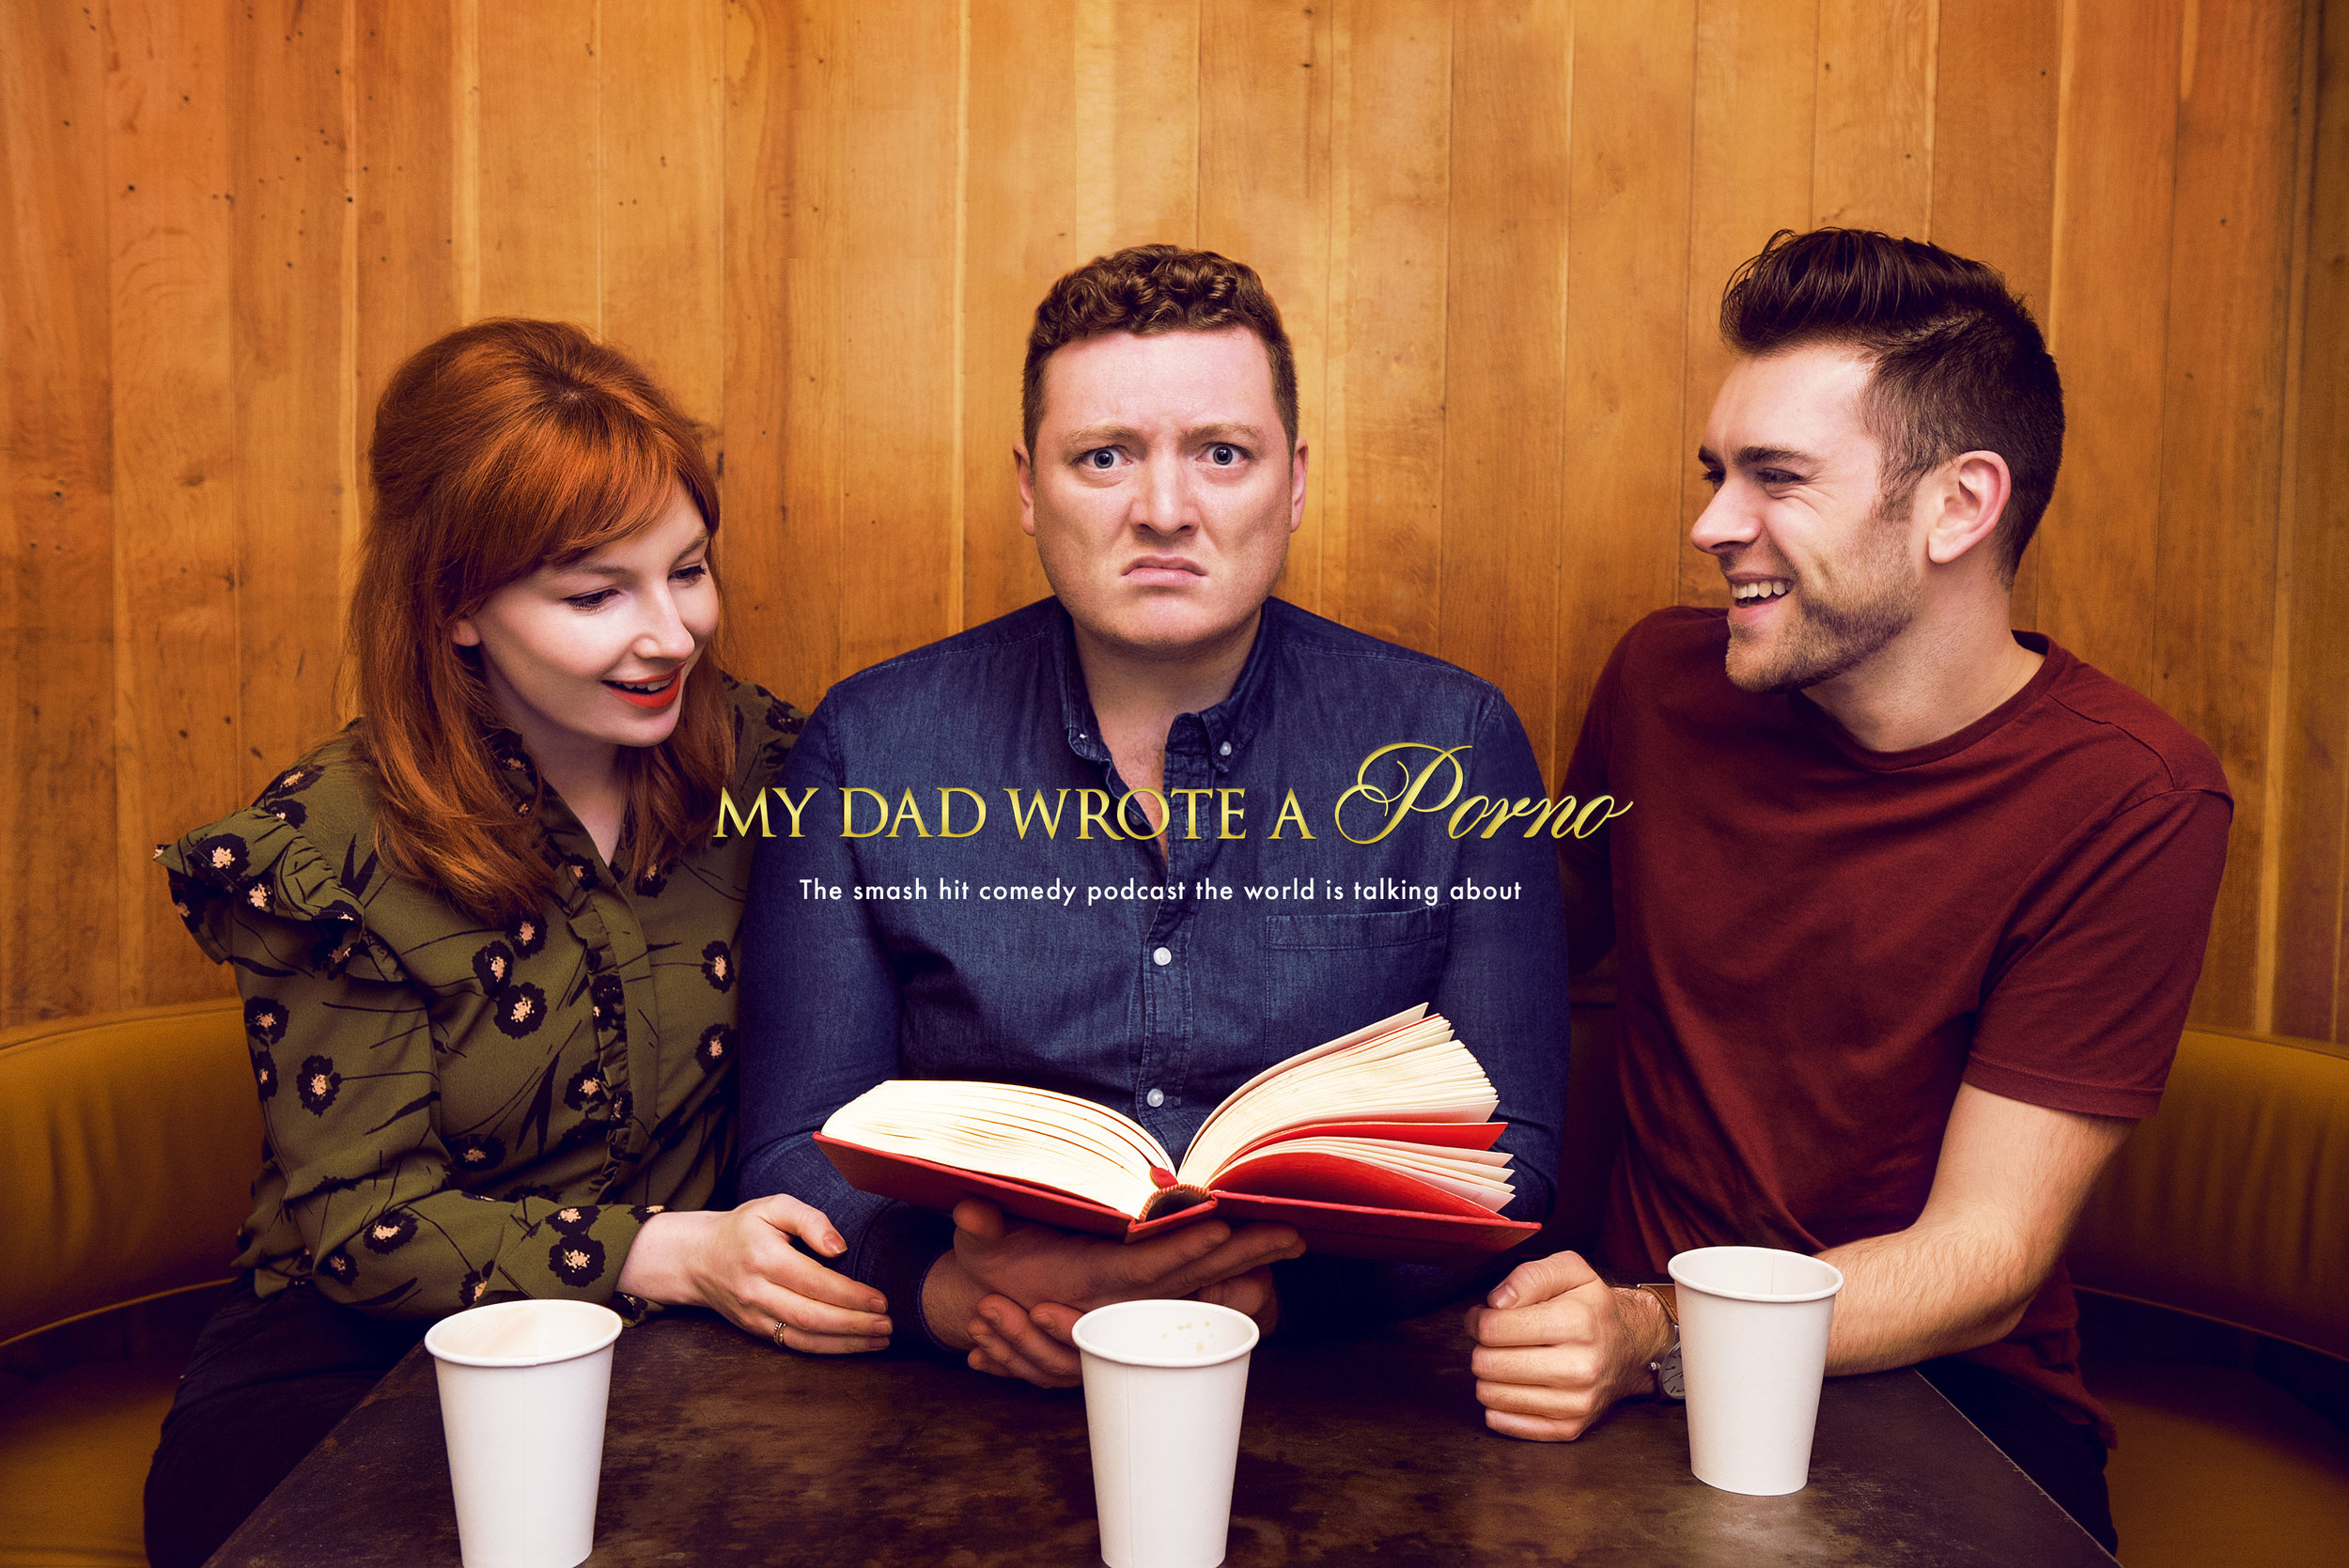 Hit podcast 'My Dad Wrote a Porno' getting comedy special treatment at HBO